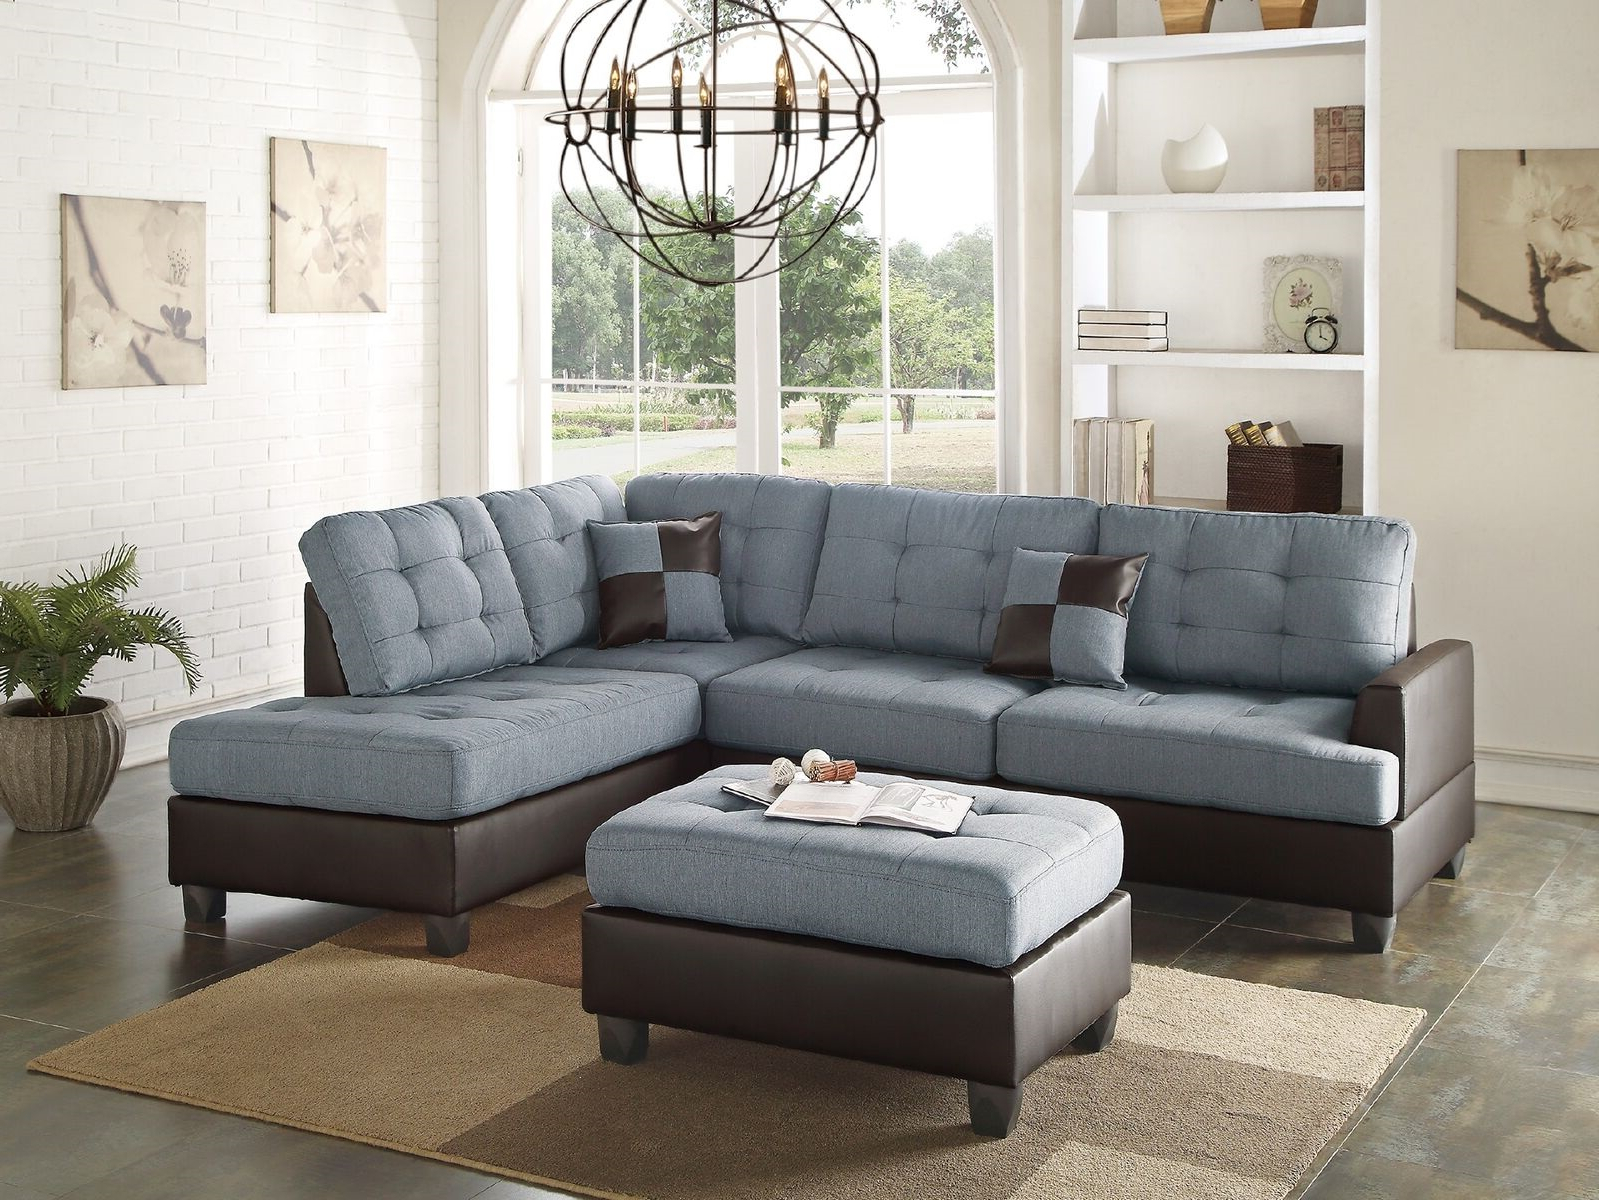 2018 Ludovic Contemporary Sofas Light Gray With Regard To Mathew Sectional Sofa Set Contemporary Grey Linen Like (View 1 of 25)